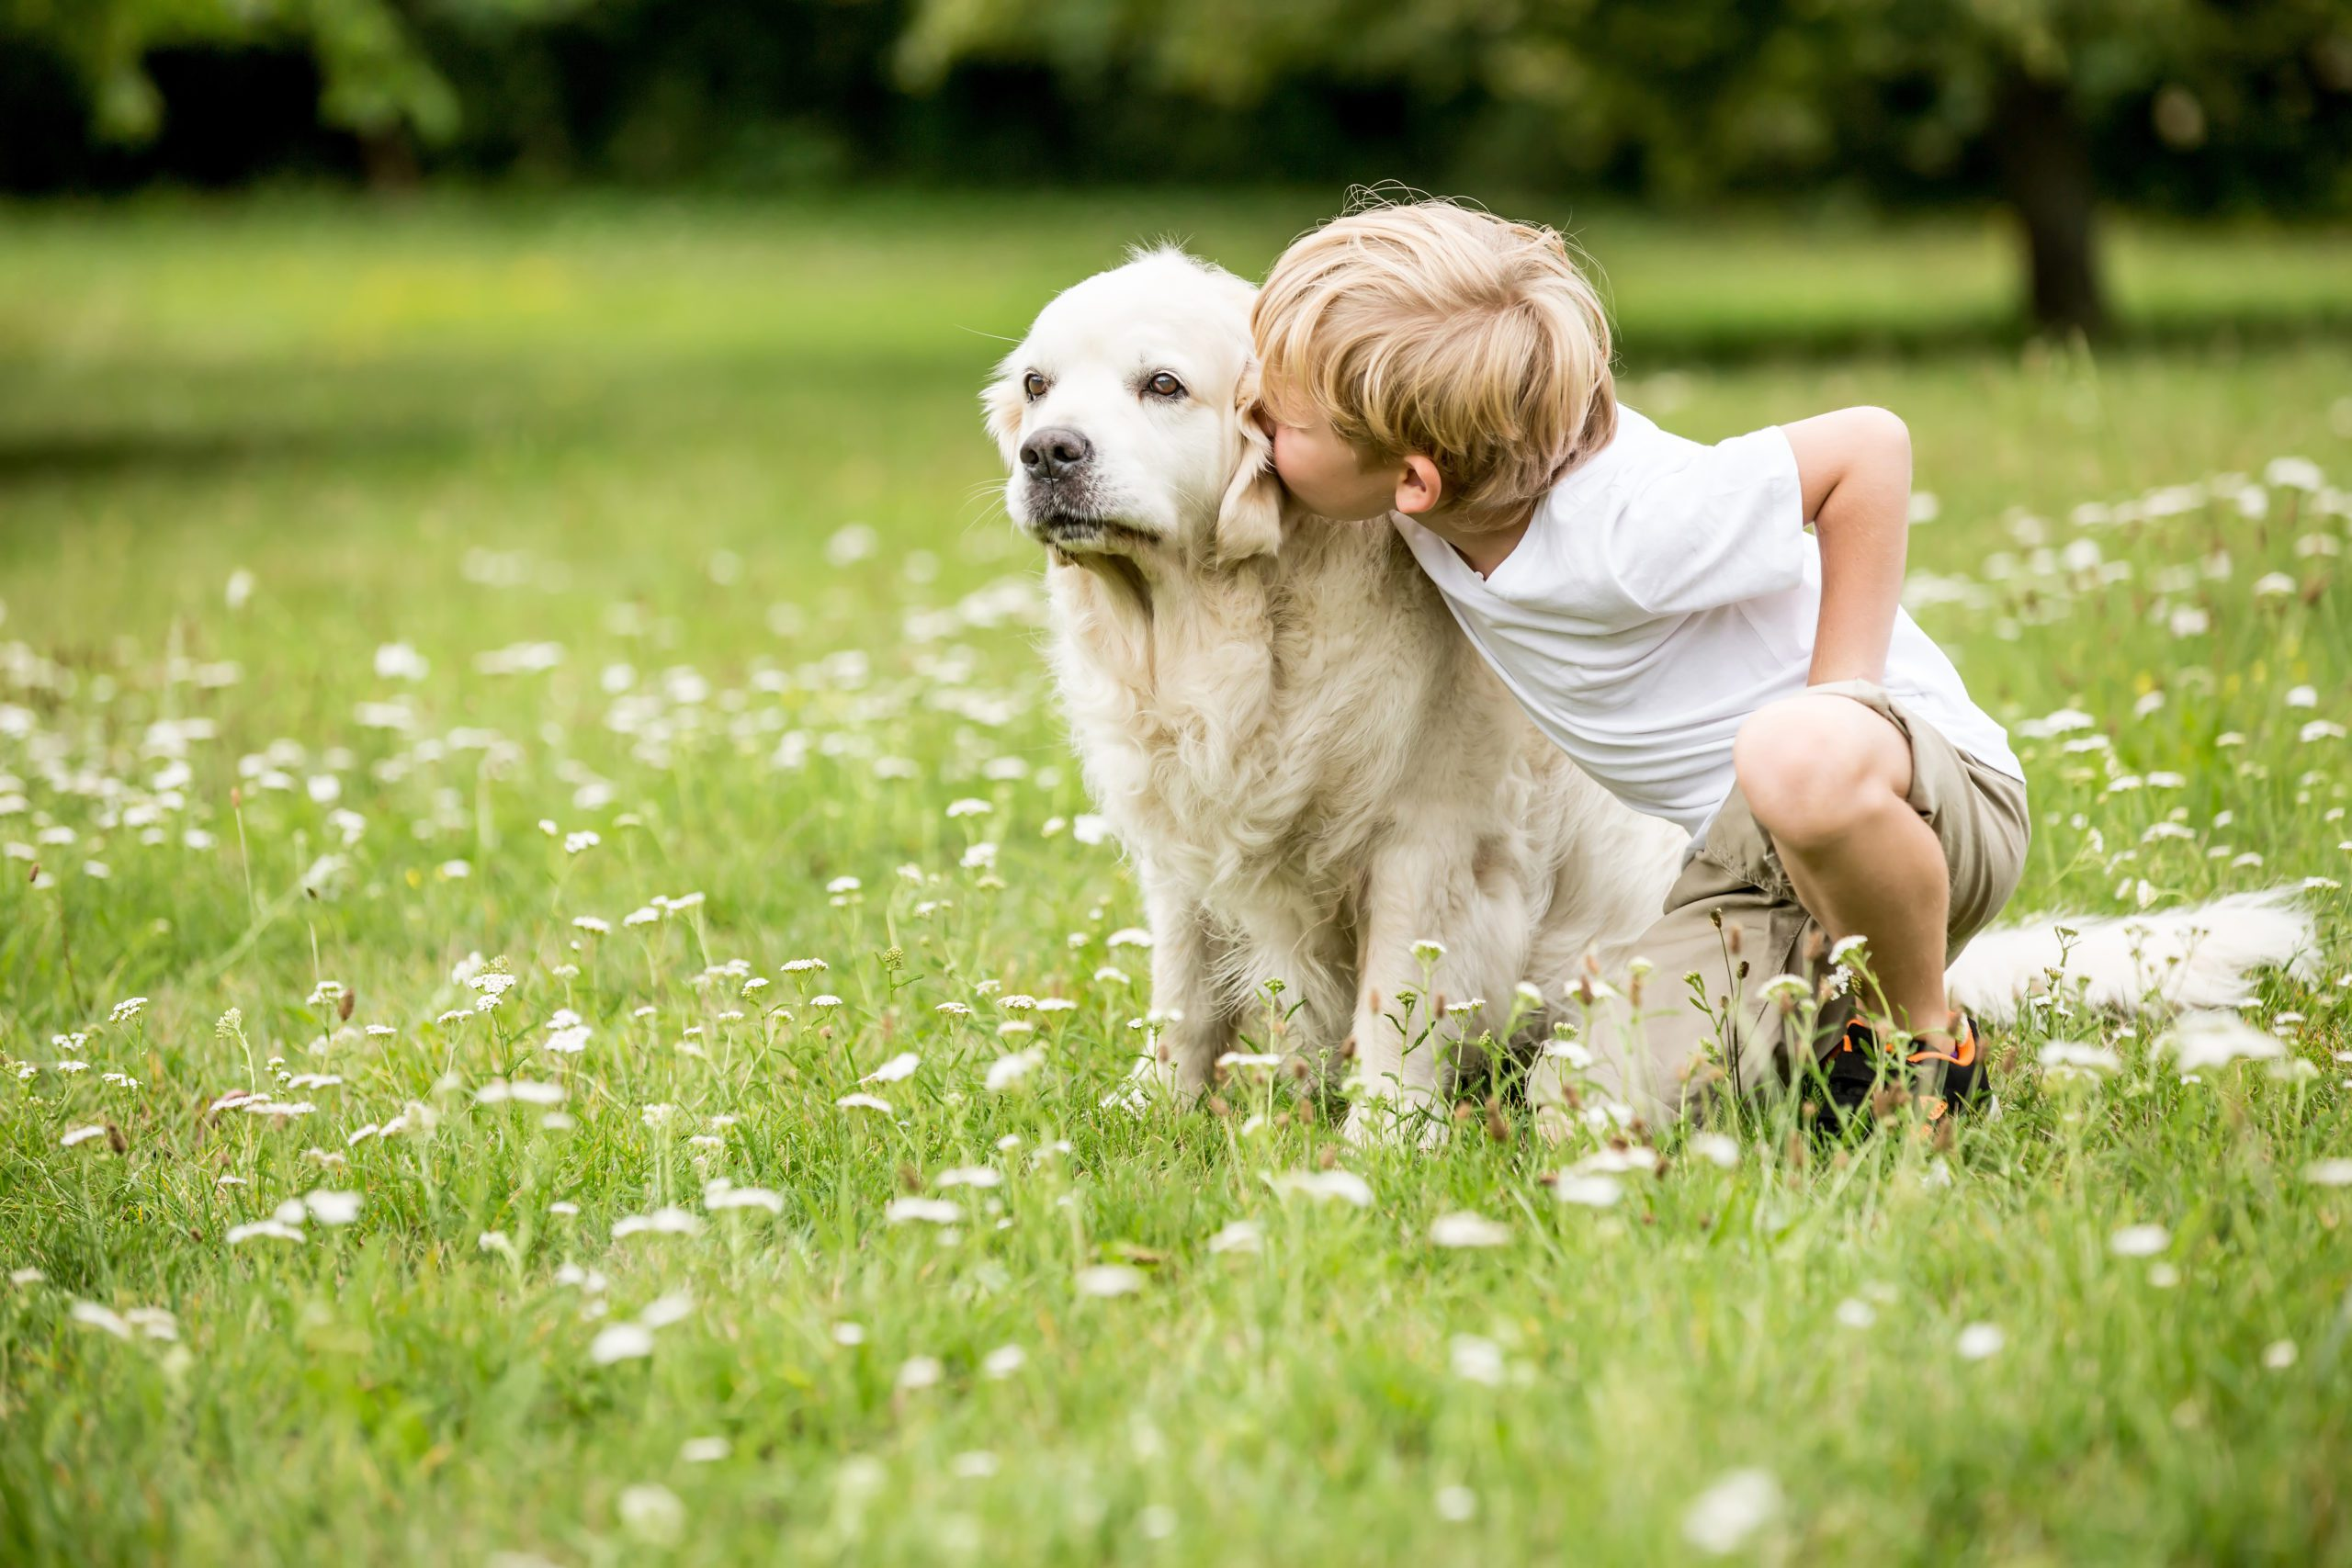 Ways Dogs Help People with Autism. Autism service dogs or even a companion dog, can make a huge difference for autistic children & adults